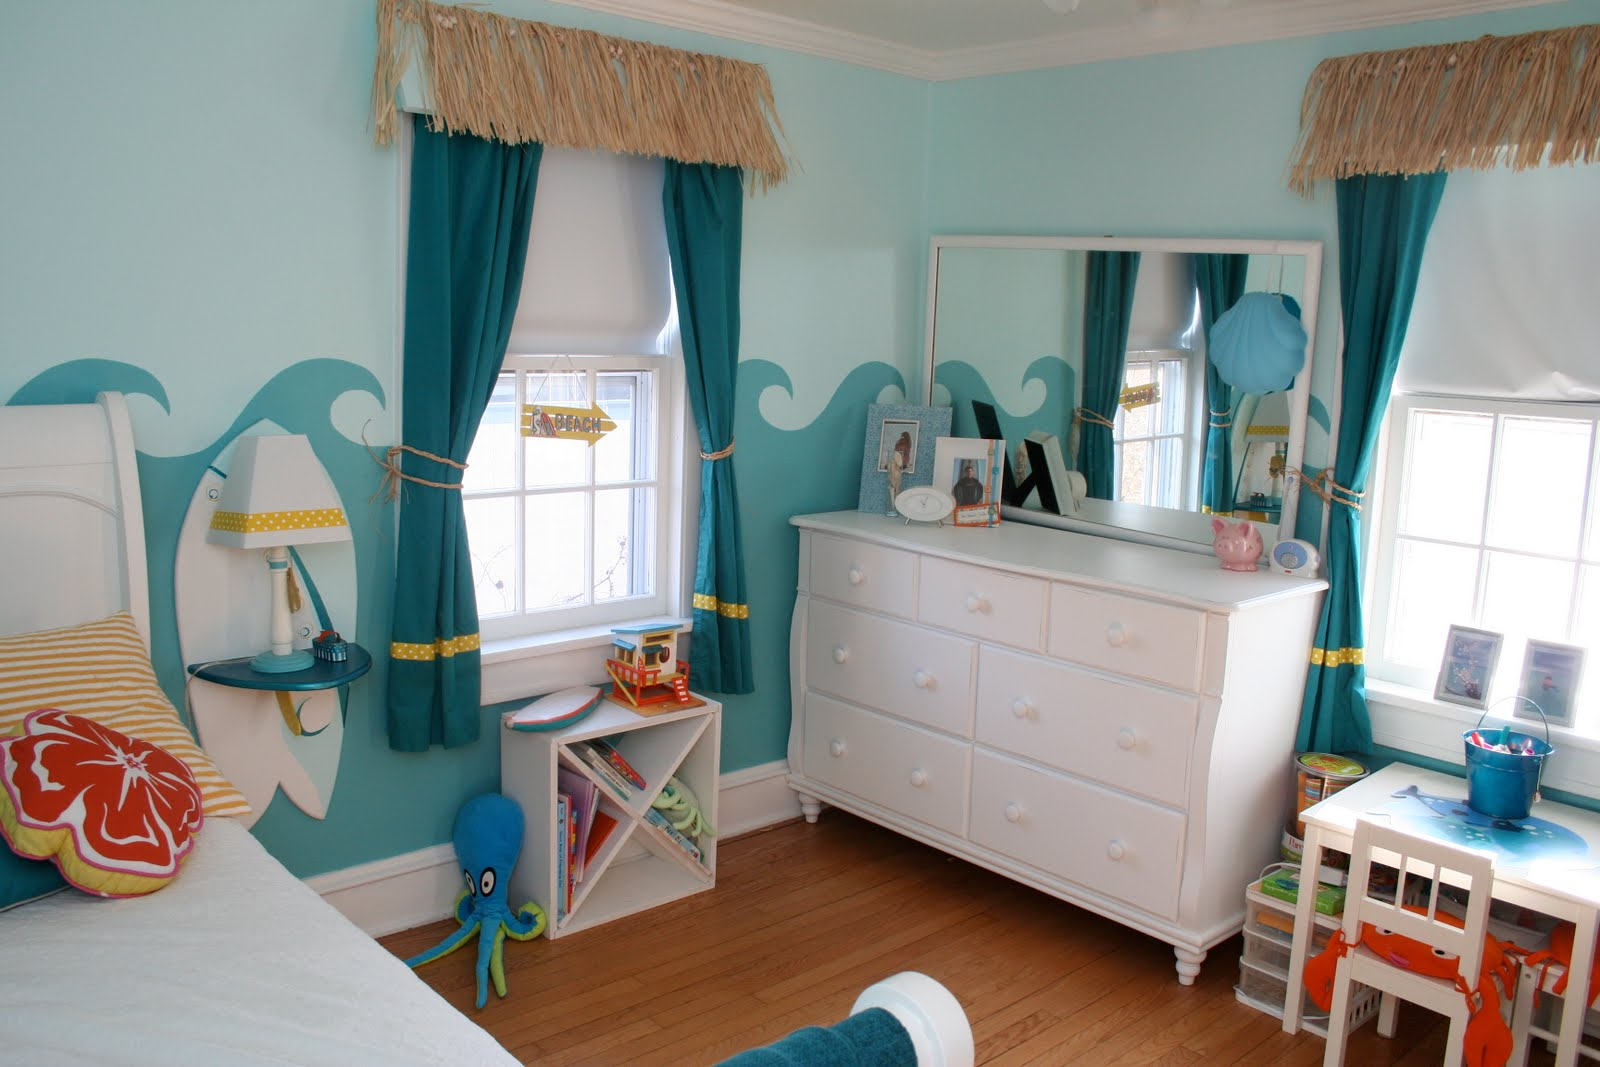 Little girl 39 s surfer room design dazzle - Pics of girl room ideas ...